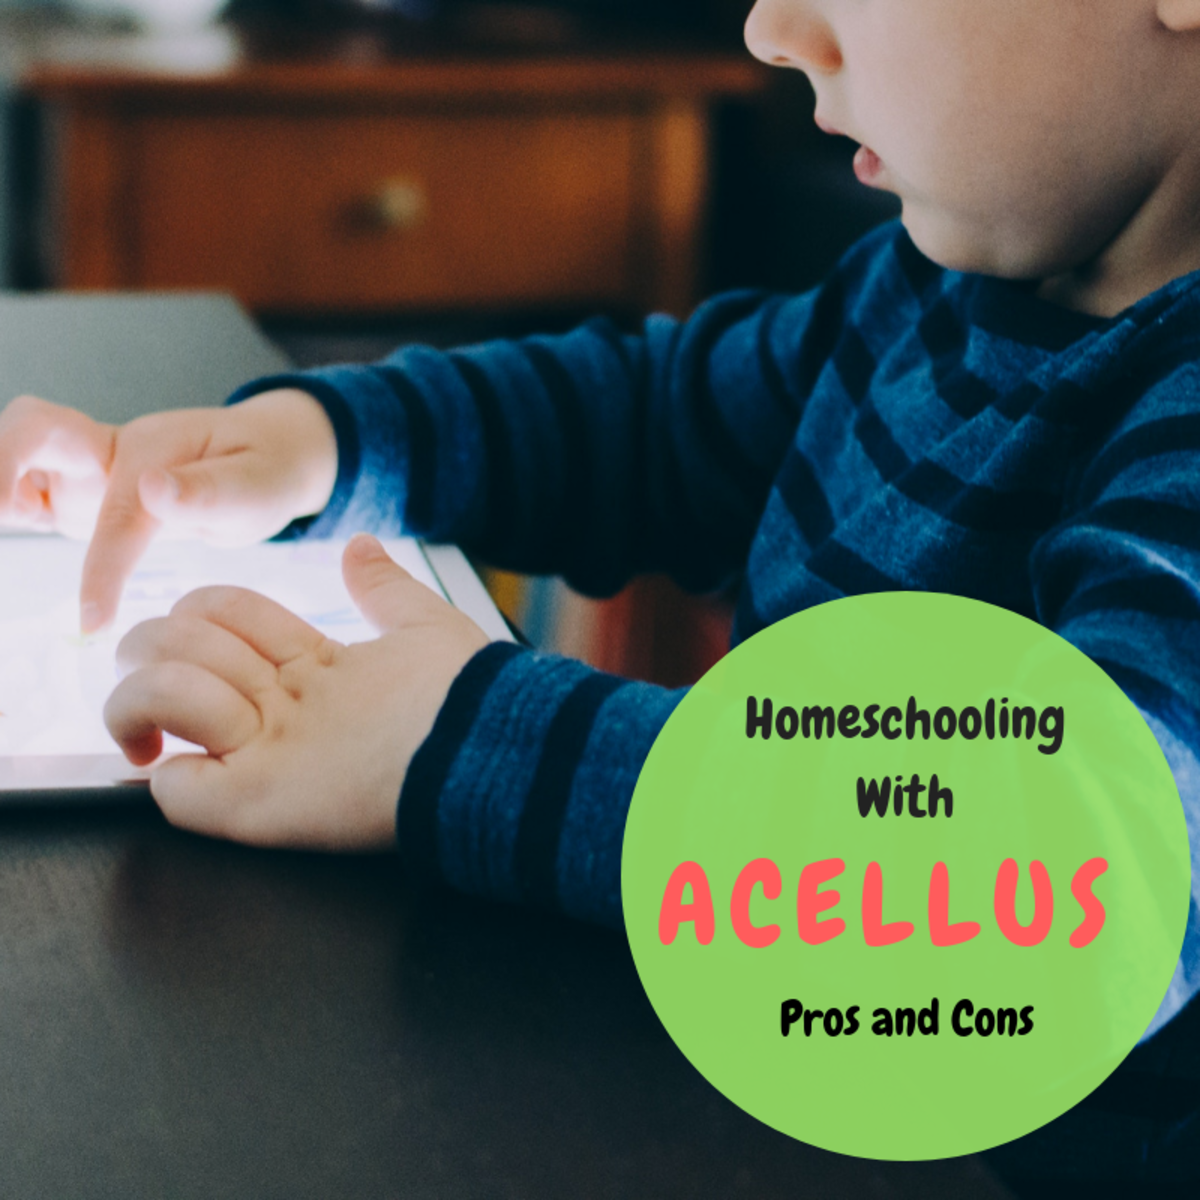 Acellus allows students to study at their own pace online.